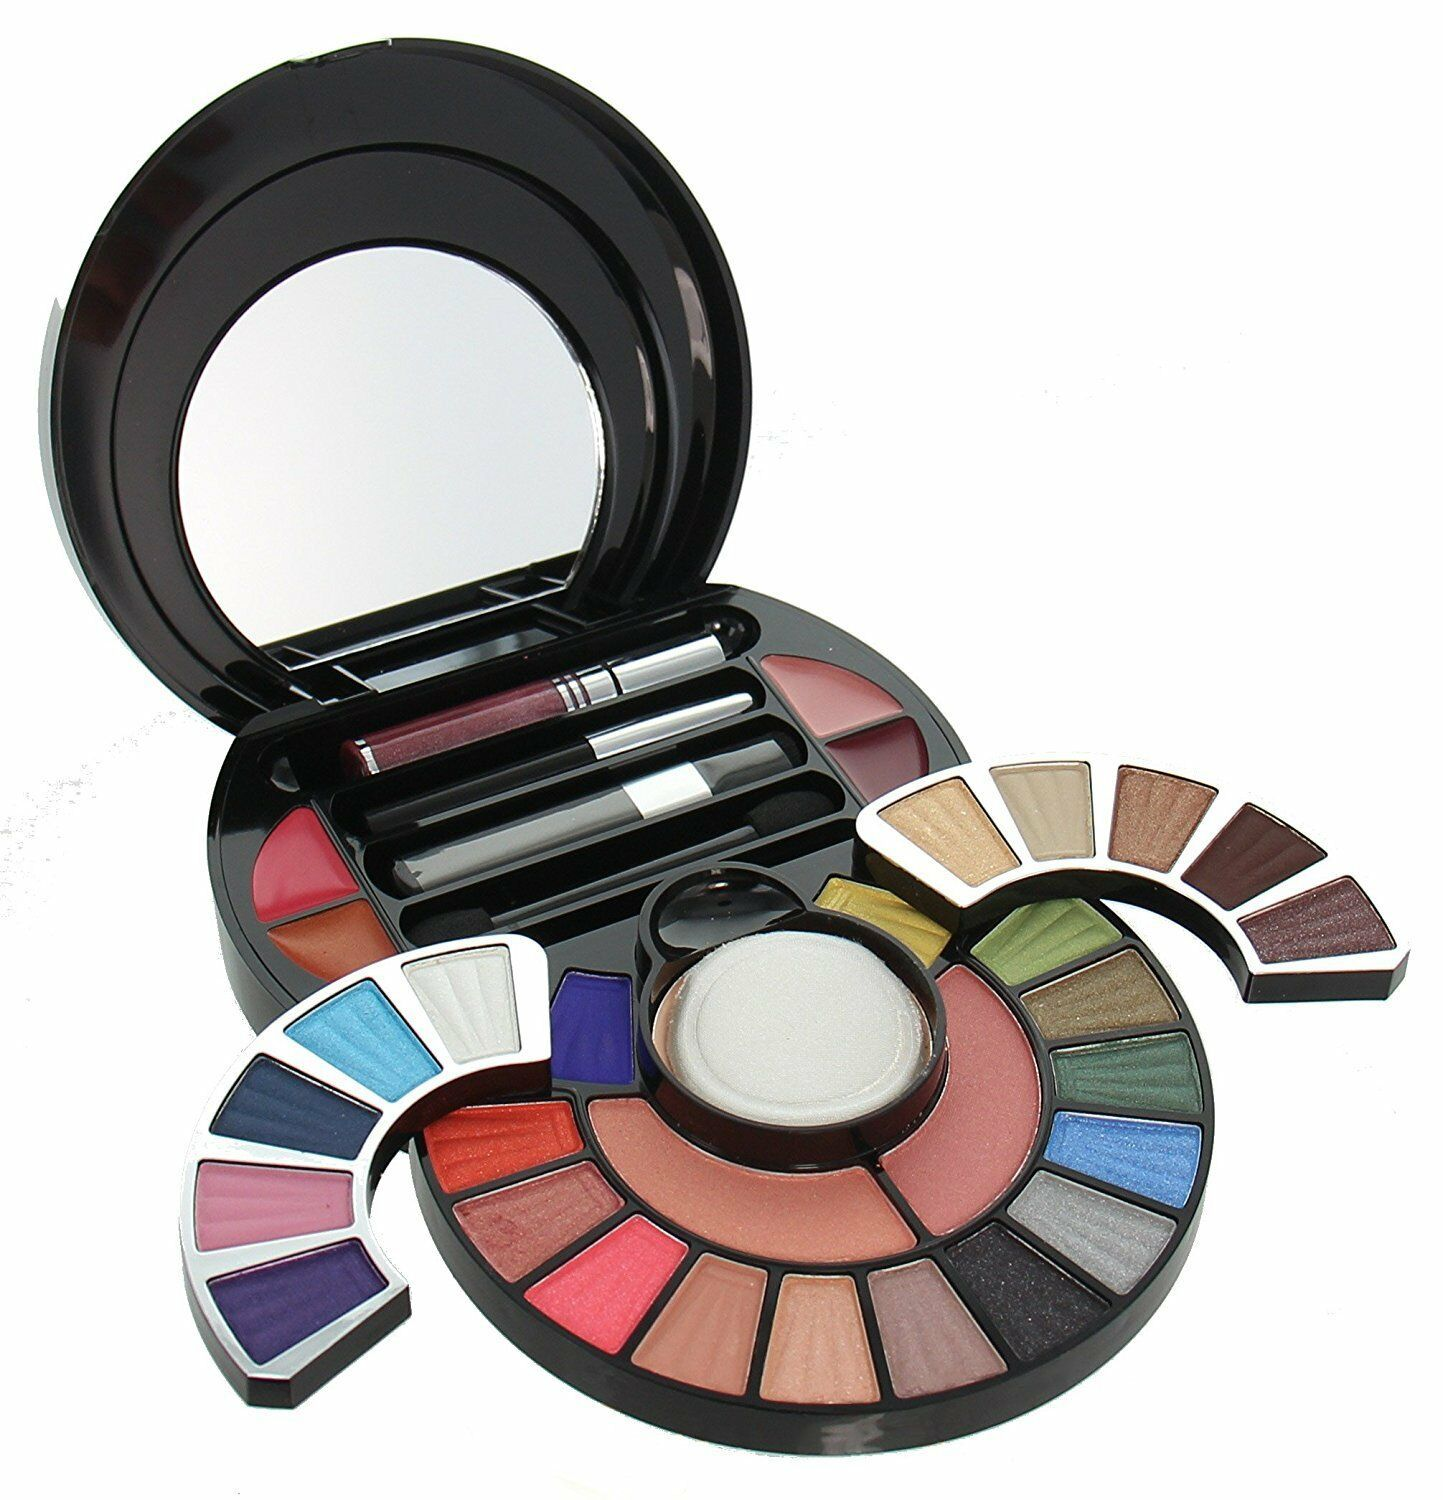 Br Portable All In One Makeup Kit Ebay Makeup Kit Top Makeup Products Eyeshadow Makeup